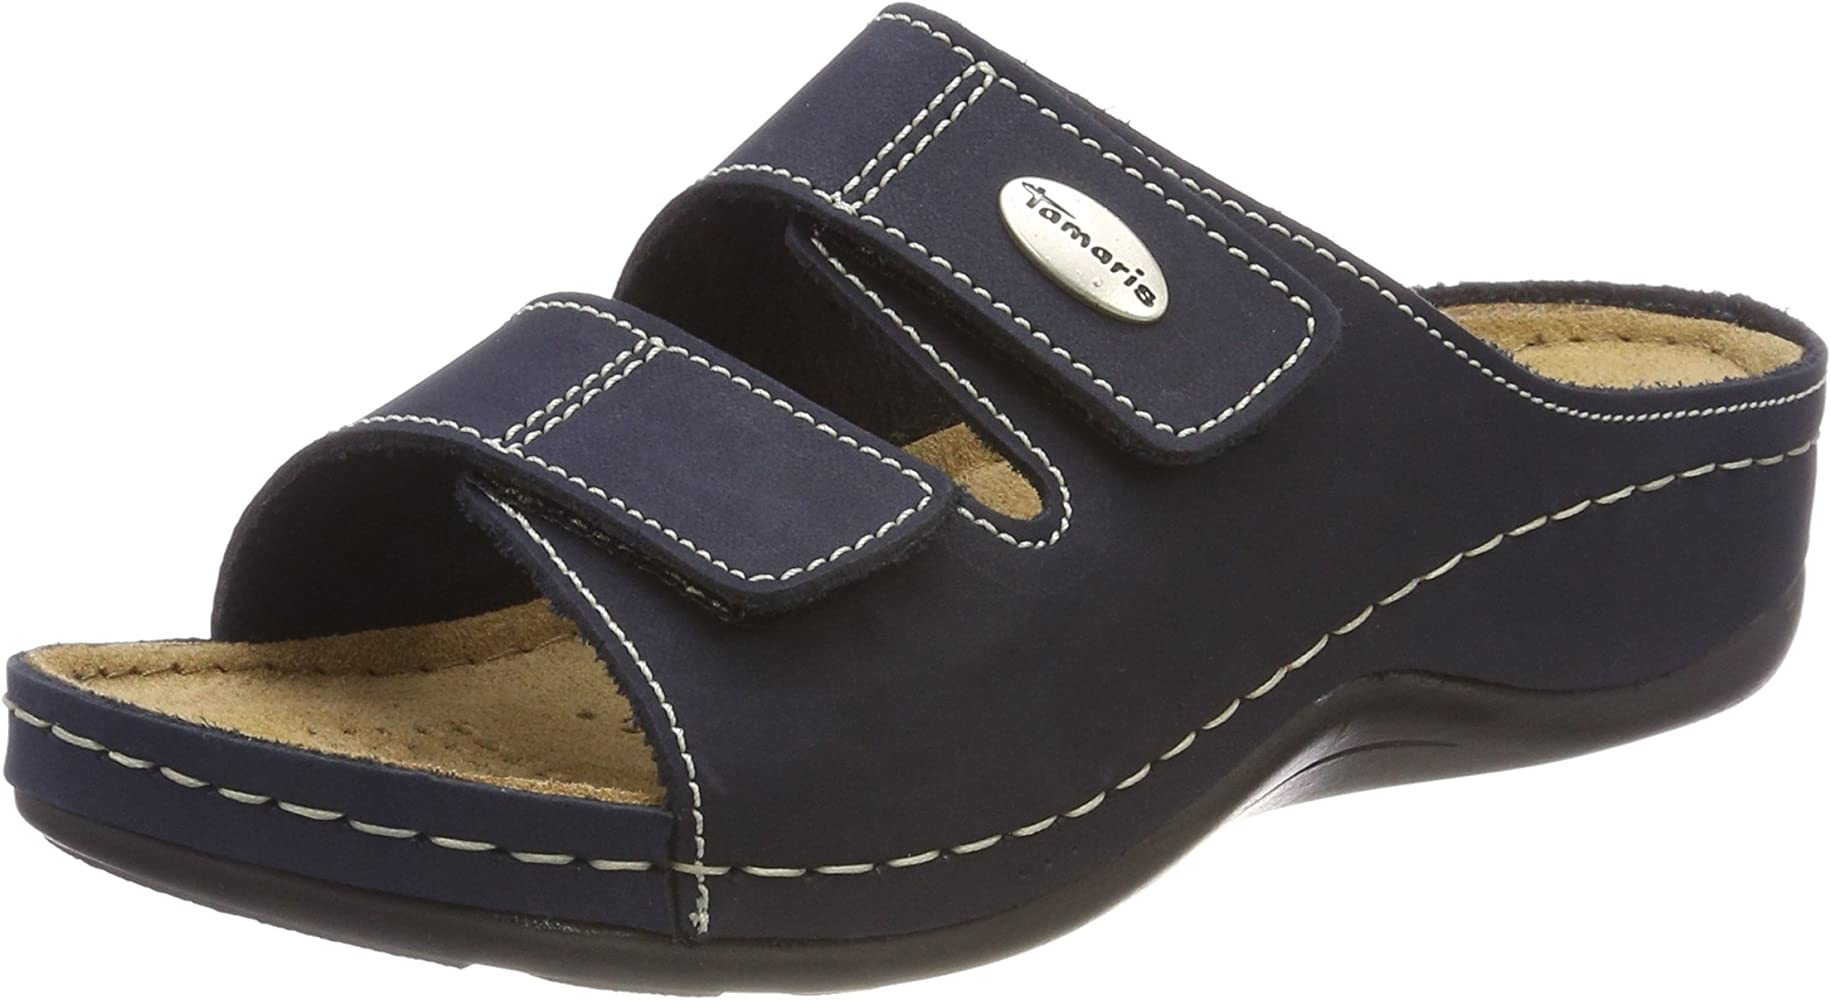 cost charm vast selection online here Tamaris 27510, Mules Femme, Bleu (Navy), 37 EU: Amazon.fr ...